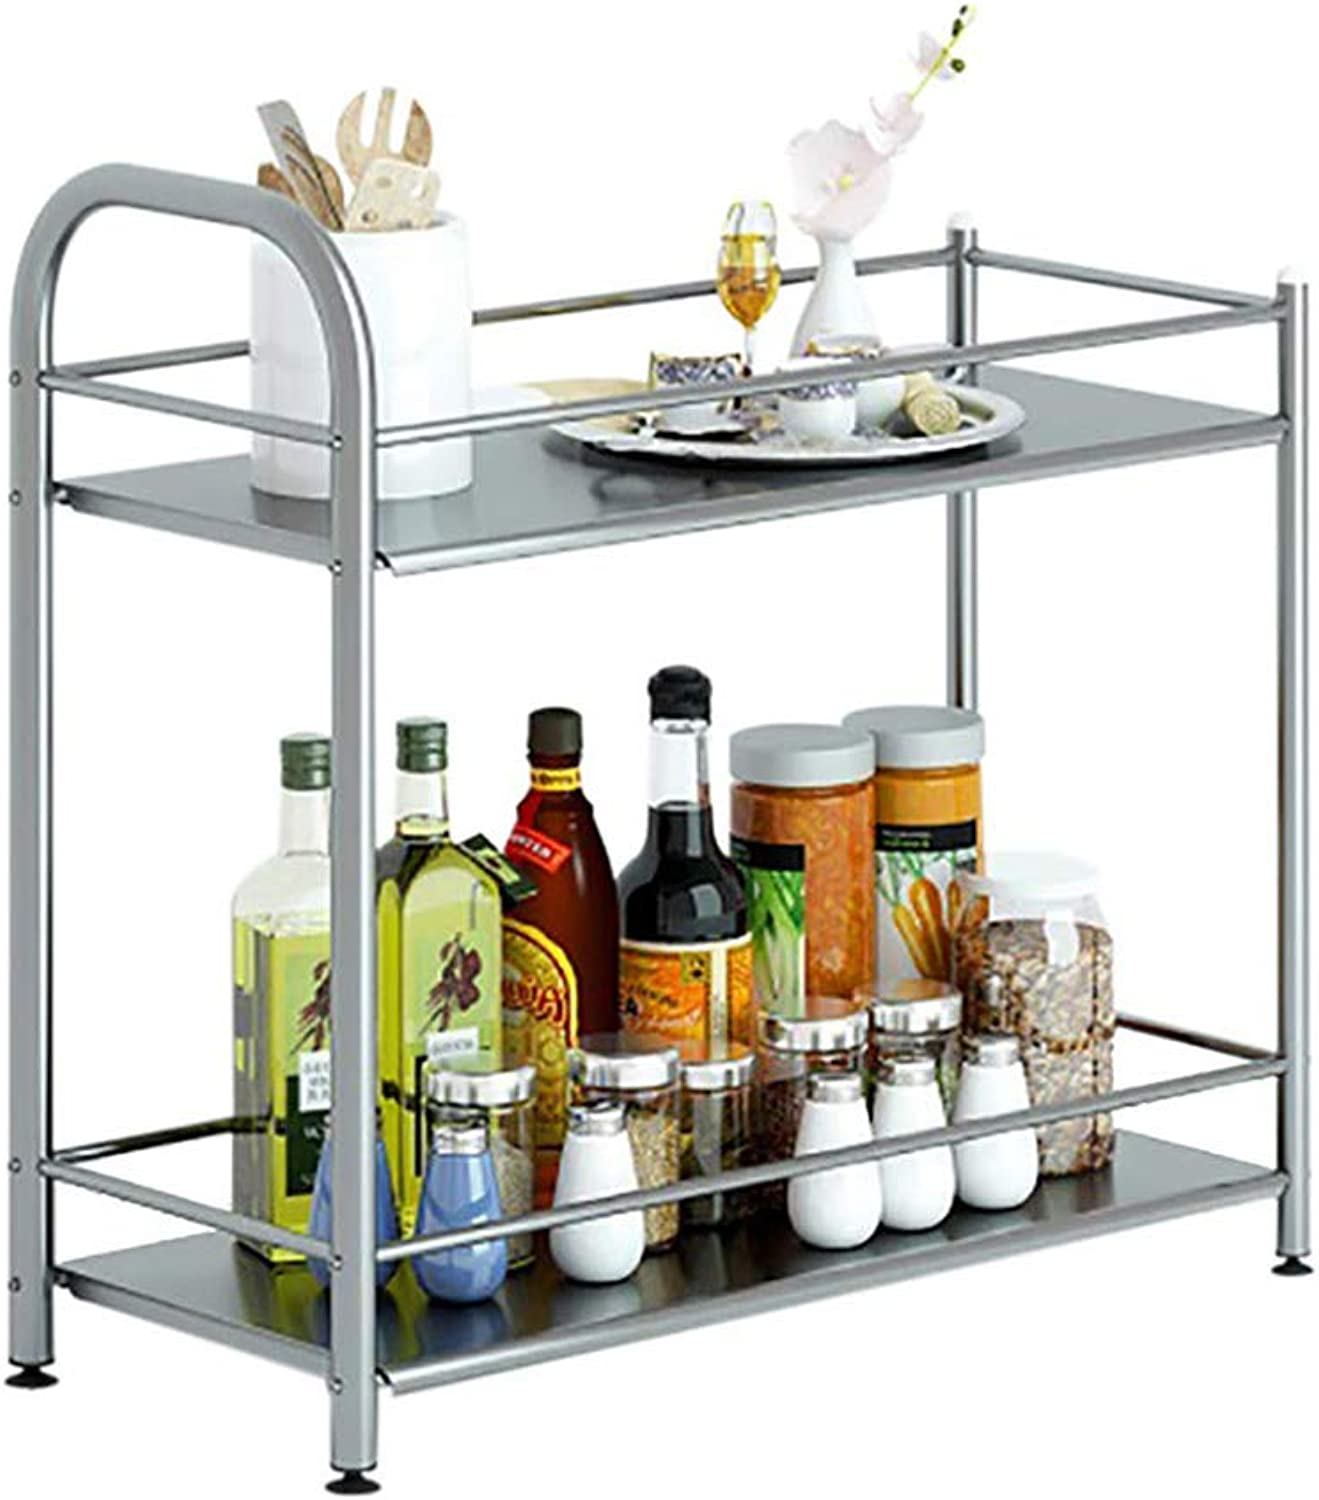 Stainless Steel Shelf, Kitchen Storage Rack, 2 Layers, Suitable for Kitchen, Bathroom, Etc.